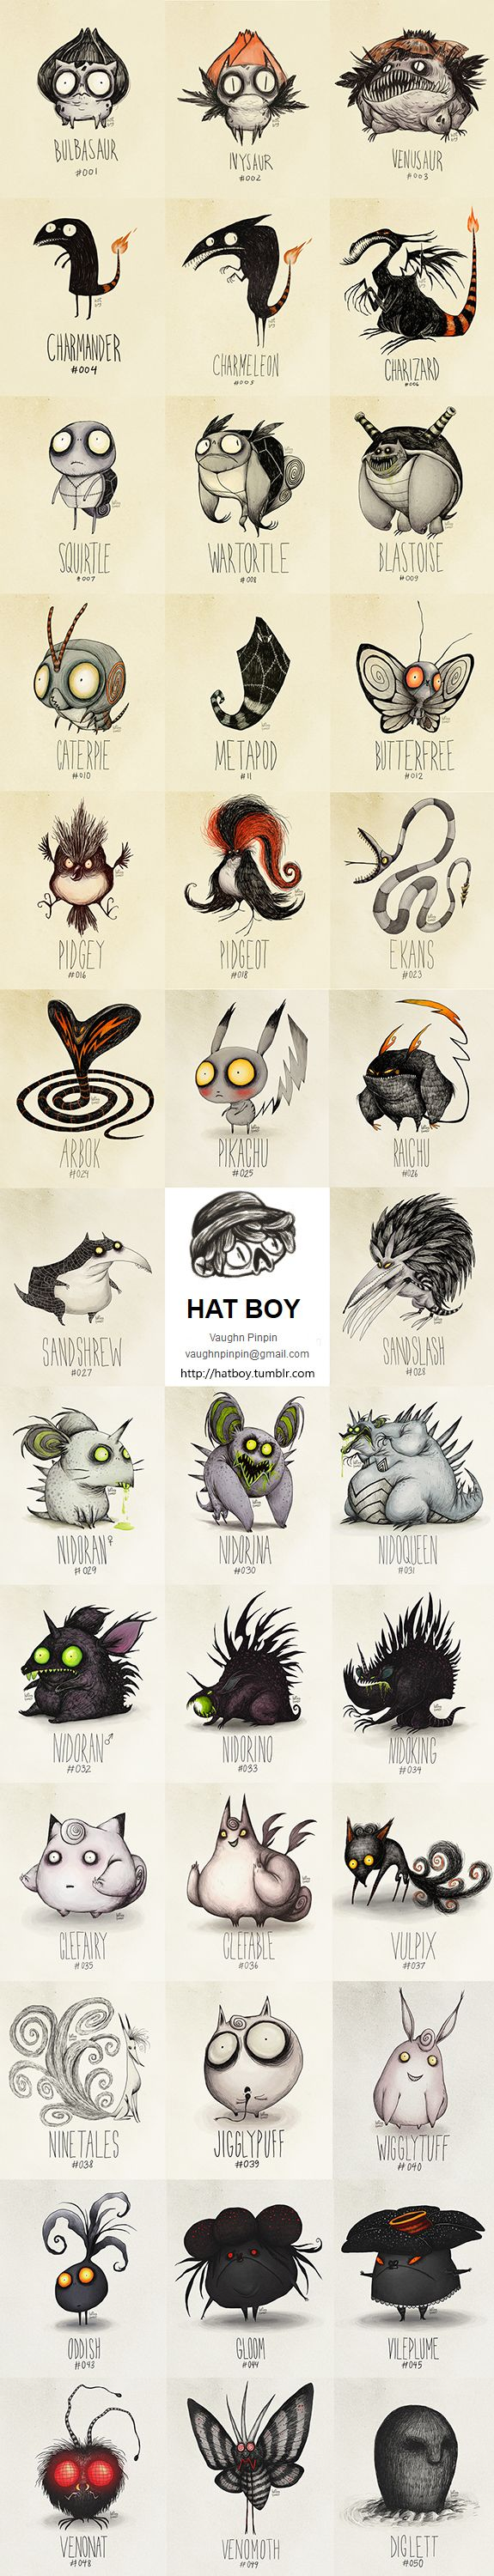 http://hatboy.tumblr.com  Hat Boy Pokemon (The Tim Burton x PKMN Project By Vaughn Pinpin)